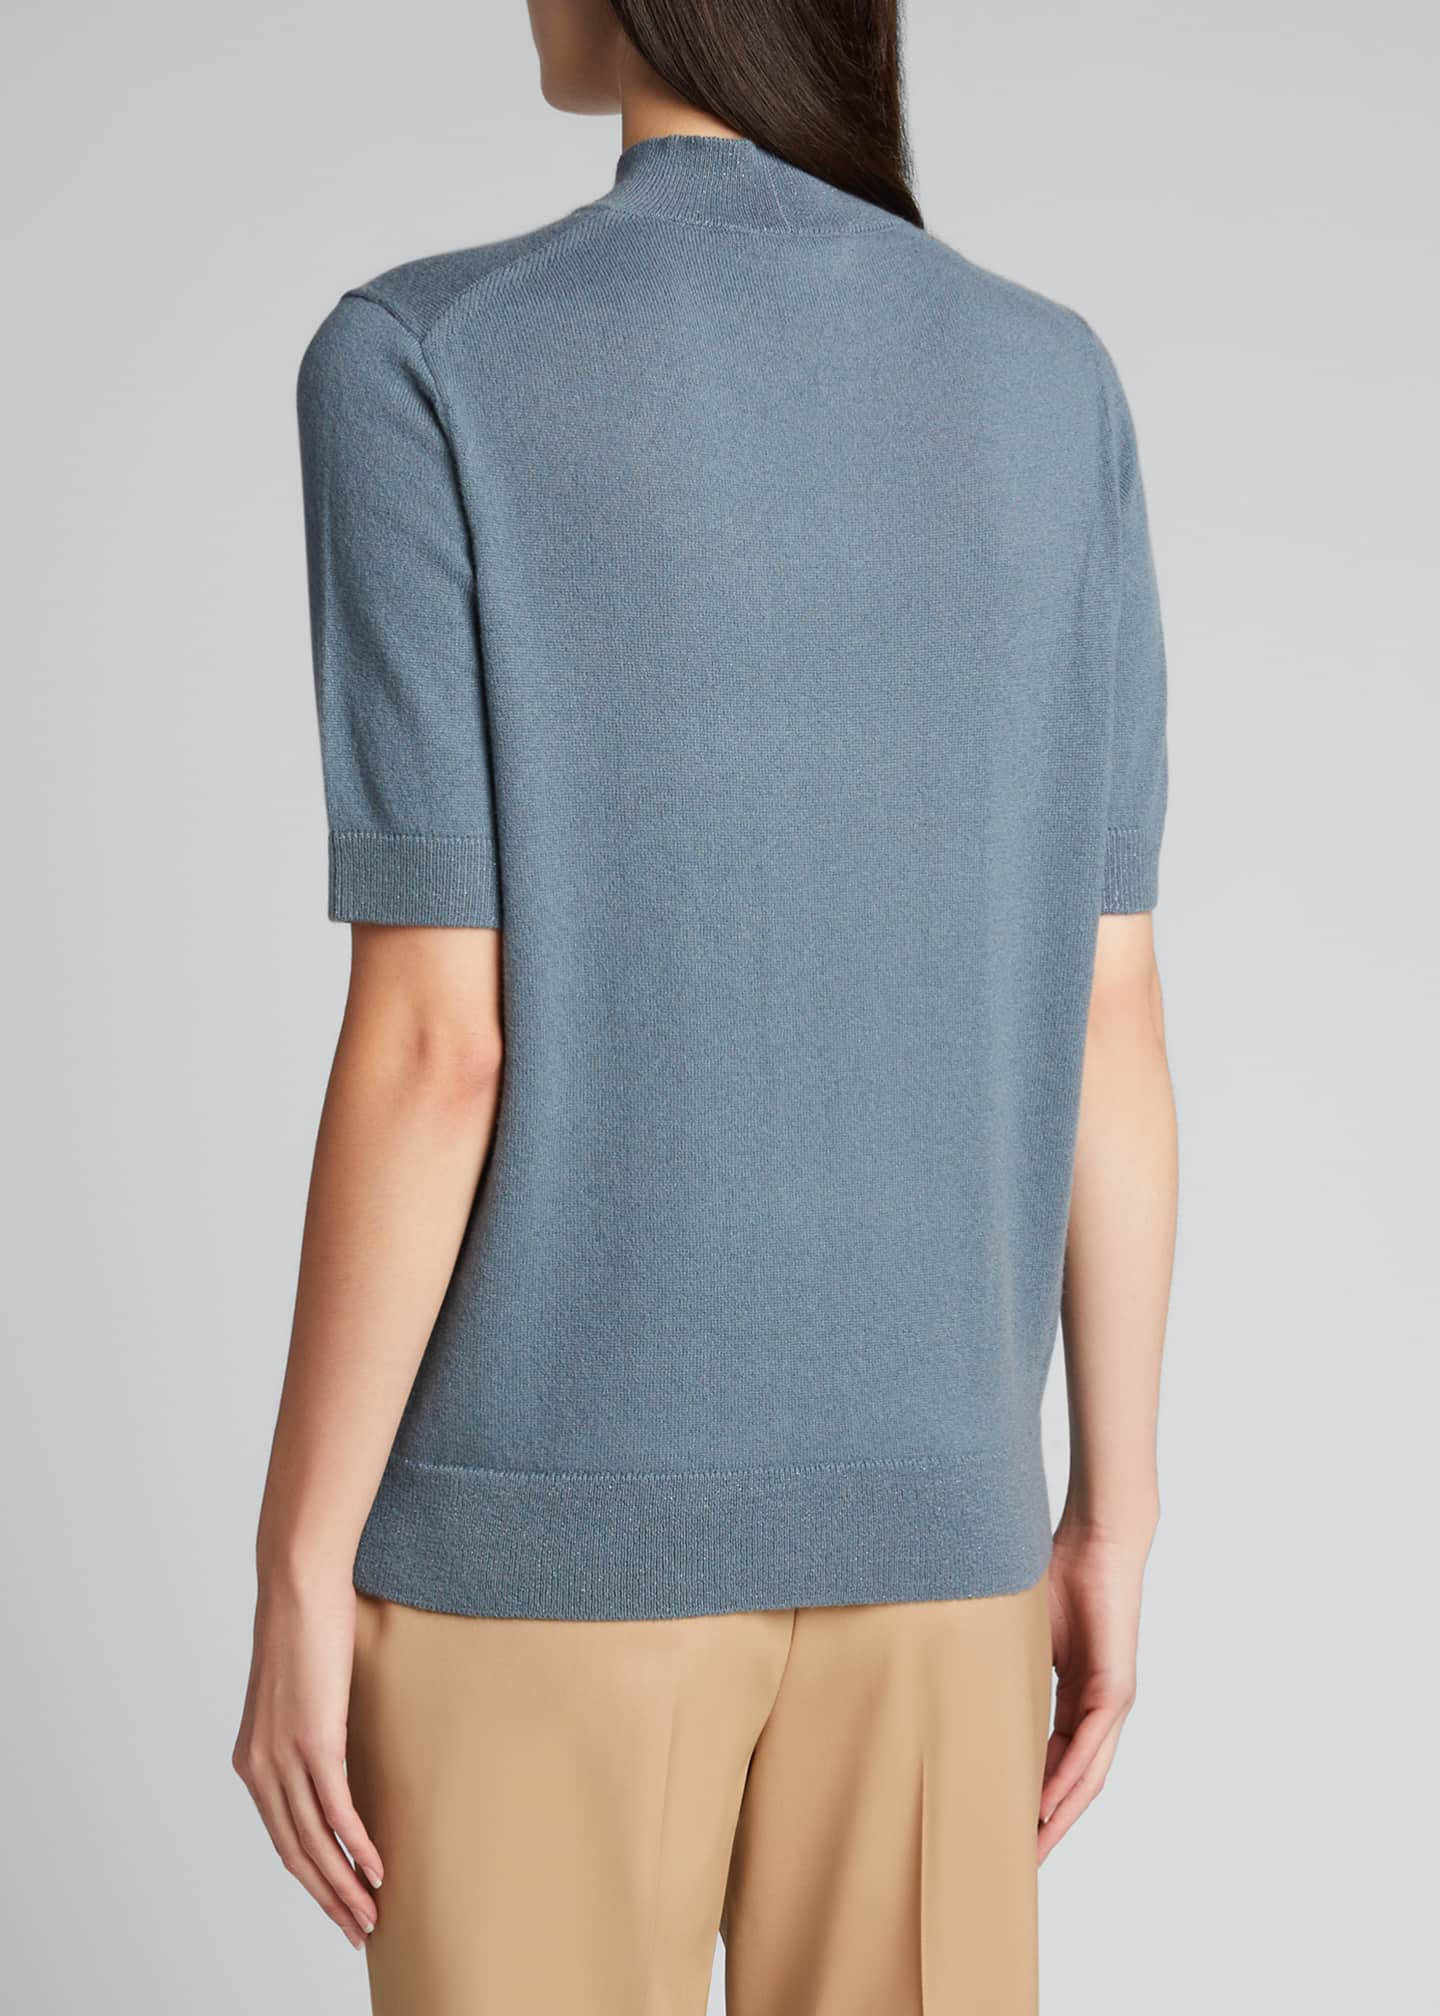 Image 2 of 5: Cashmere Mock-Neck Sweater with Metallic